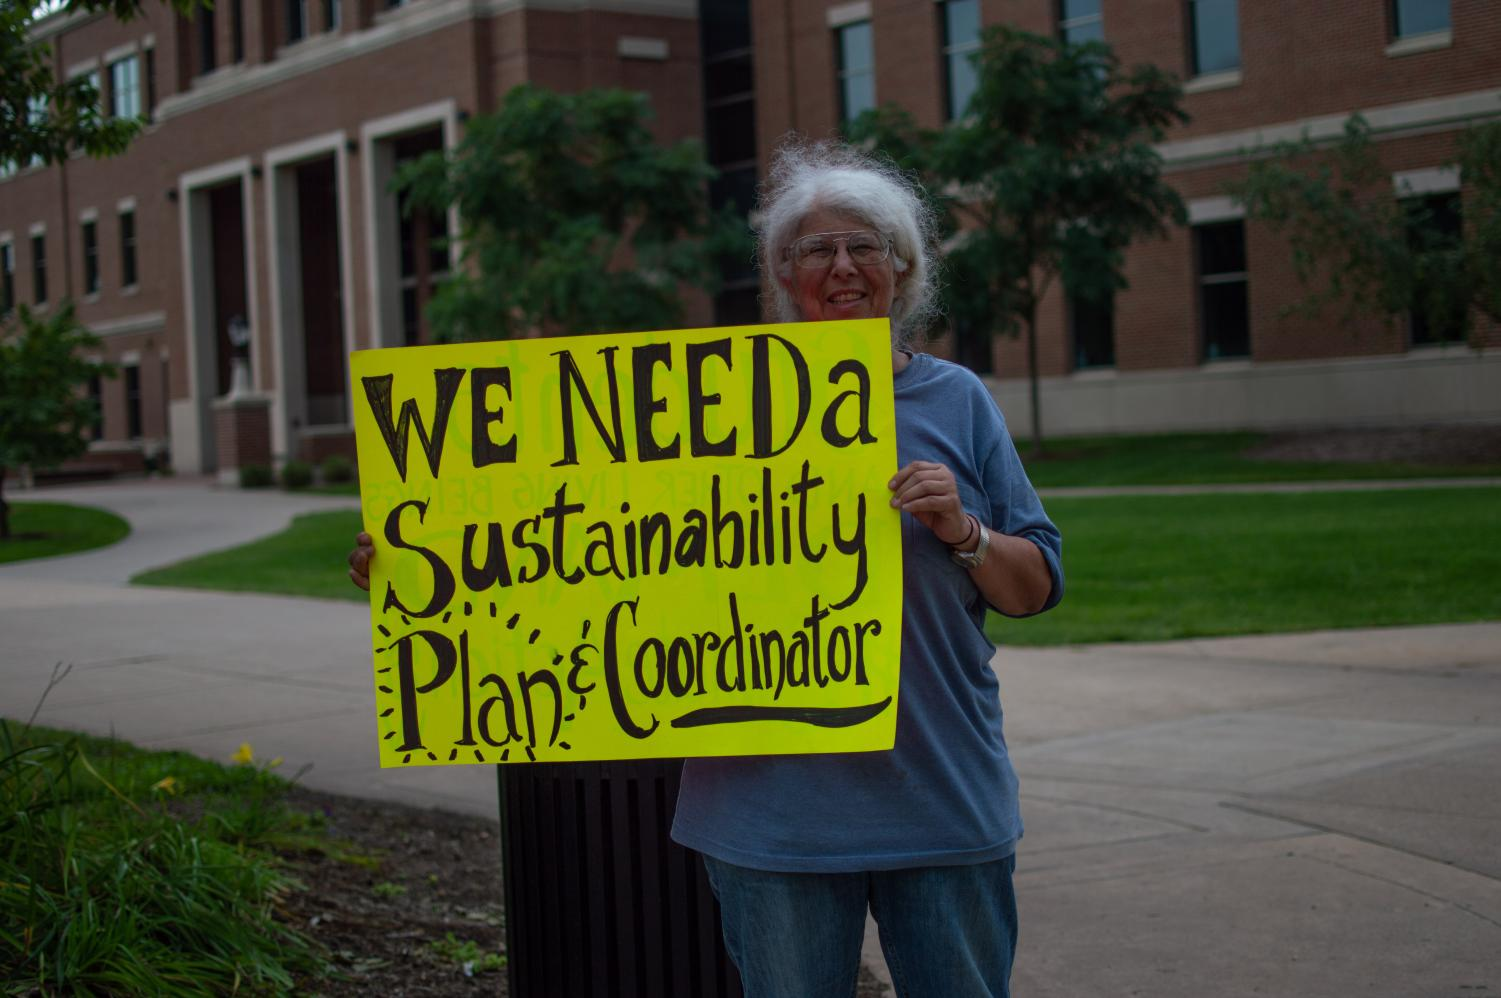 Photo of protester Cathy Van Maren at UWL climate strike. Photo taken by photojournalist Carly-Rundle Borchert.